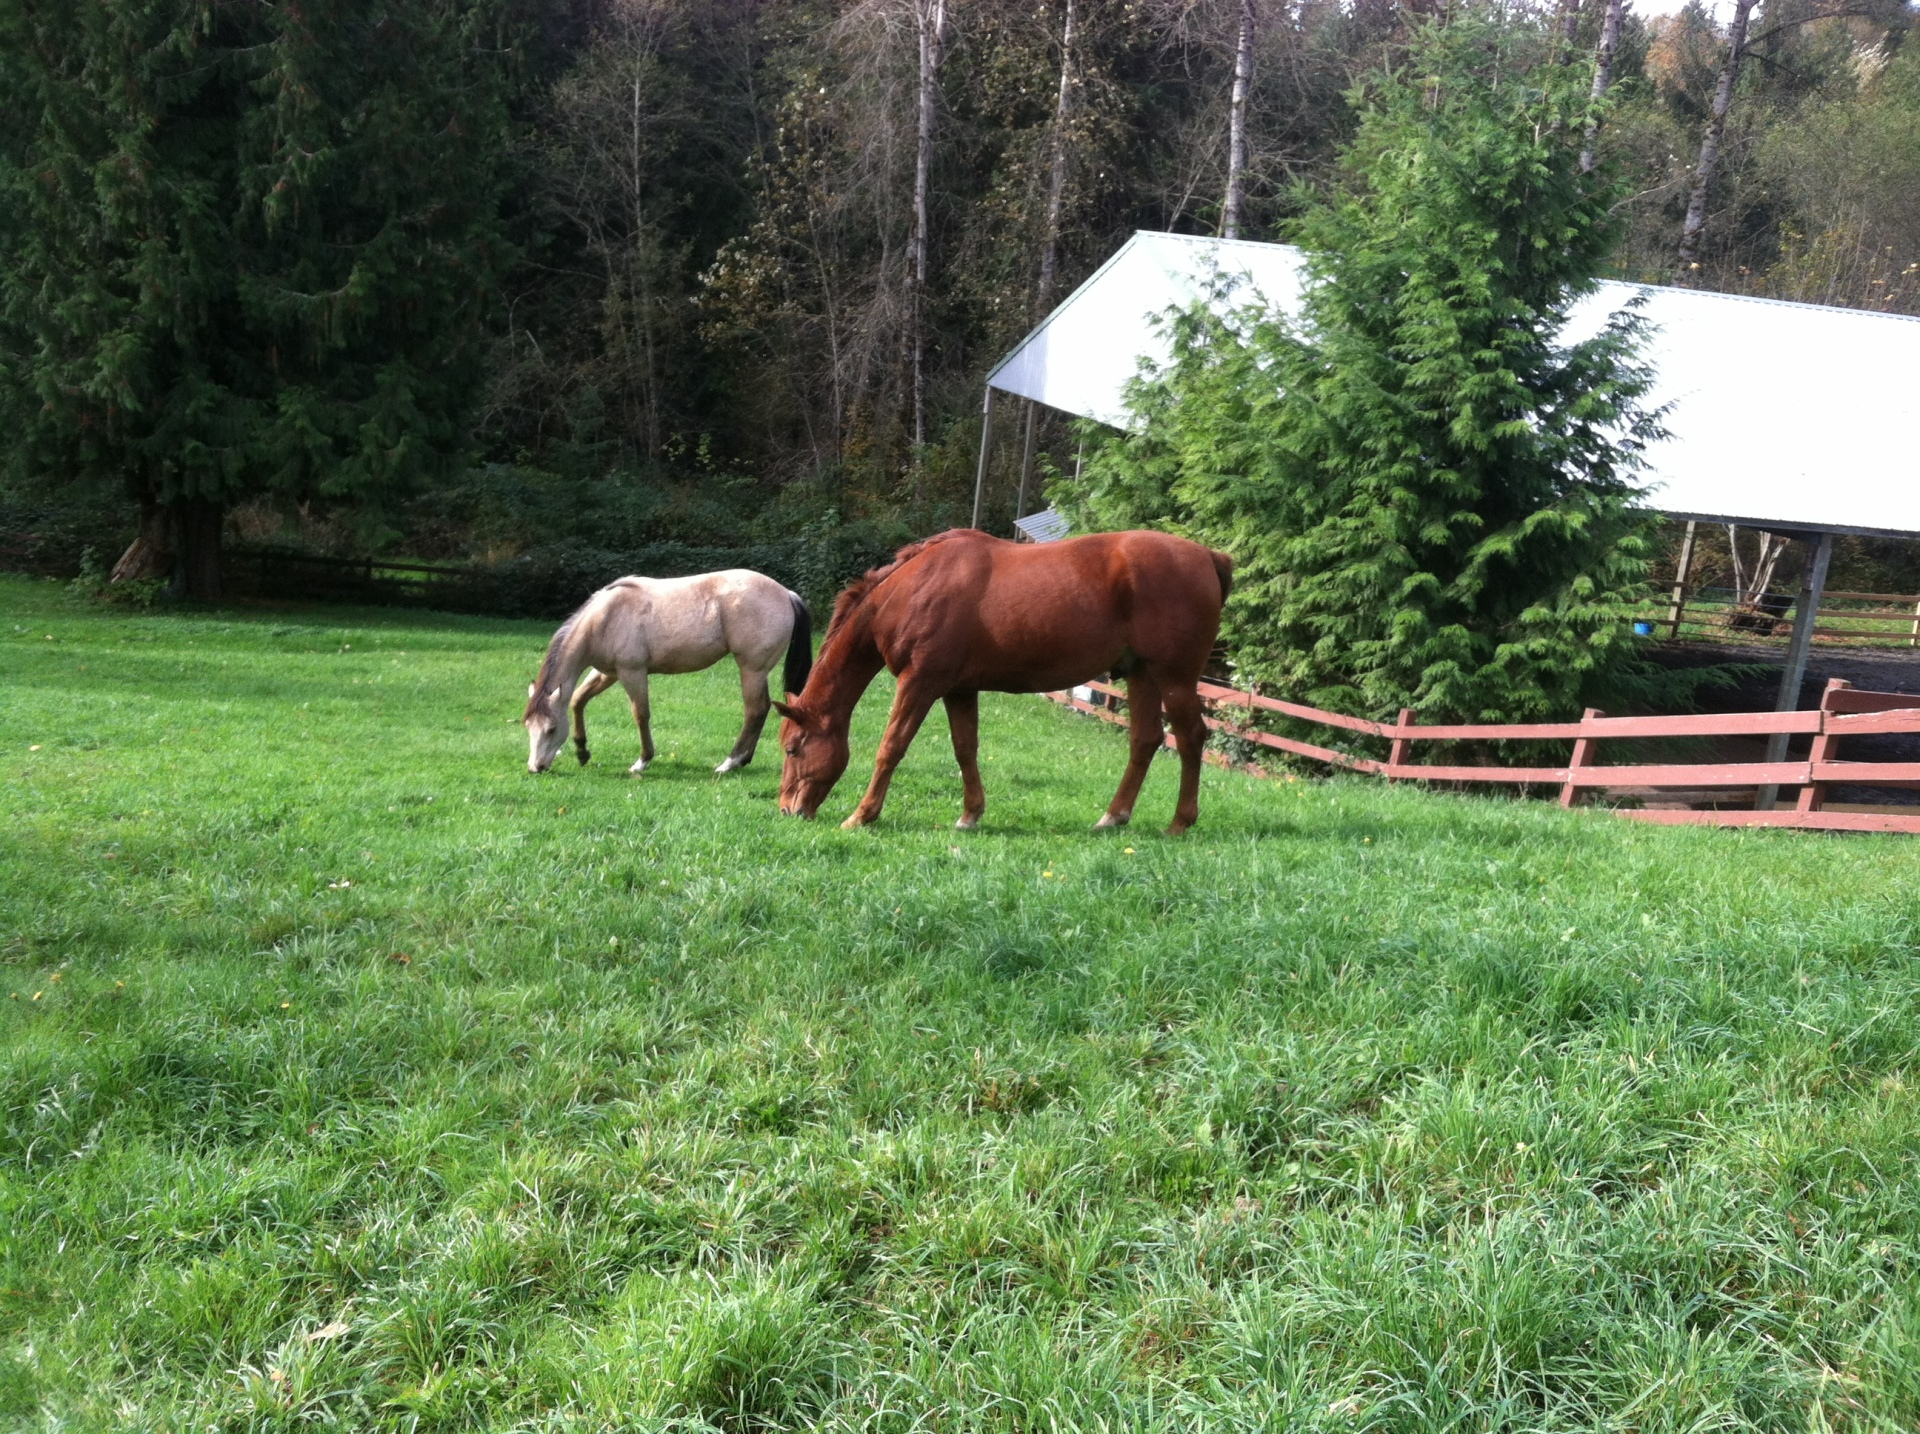 Ruth and Flip grazing.